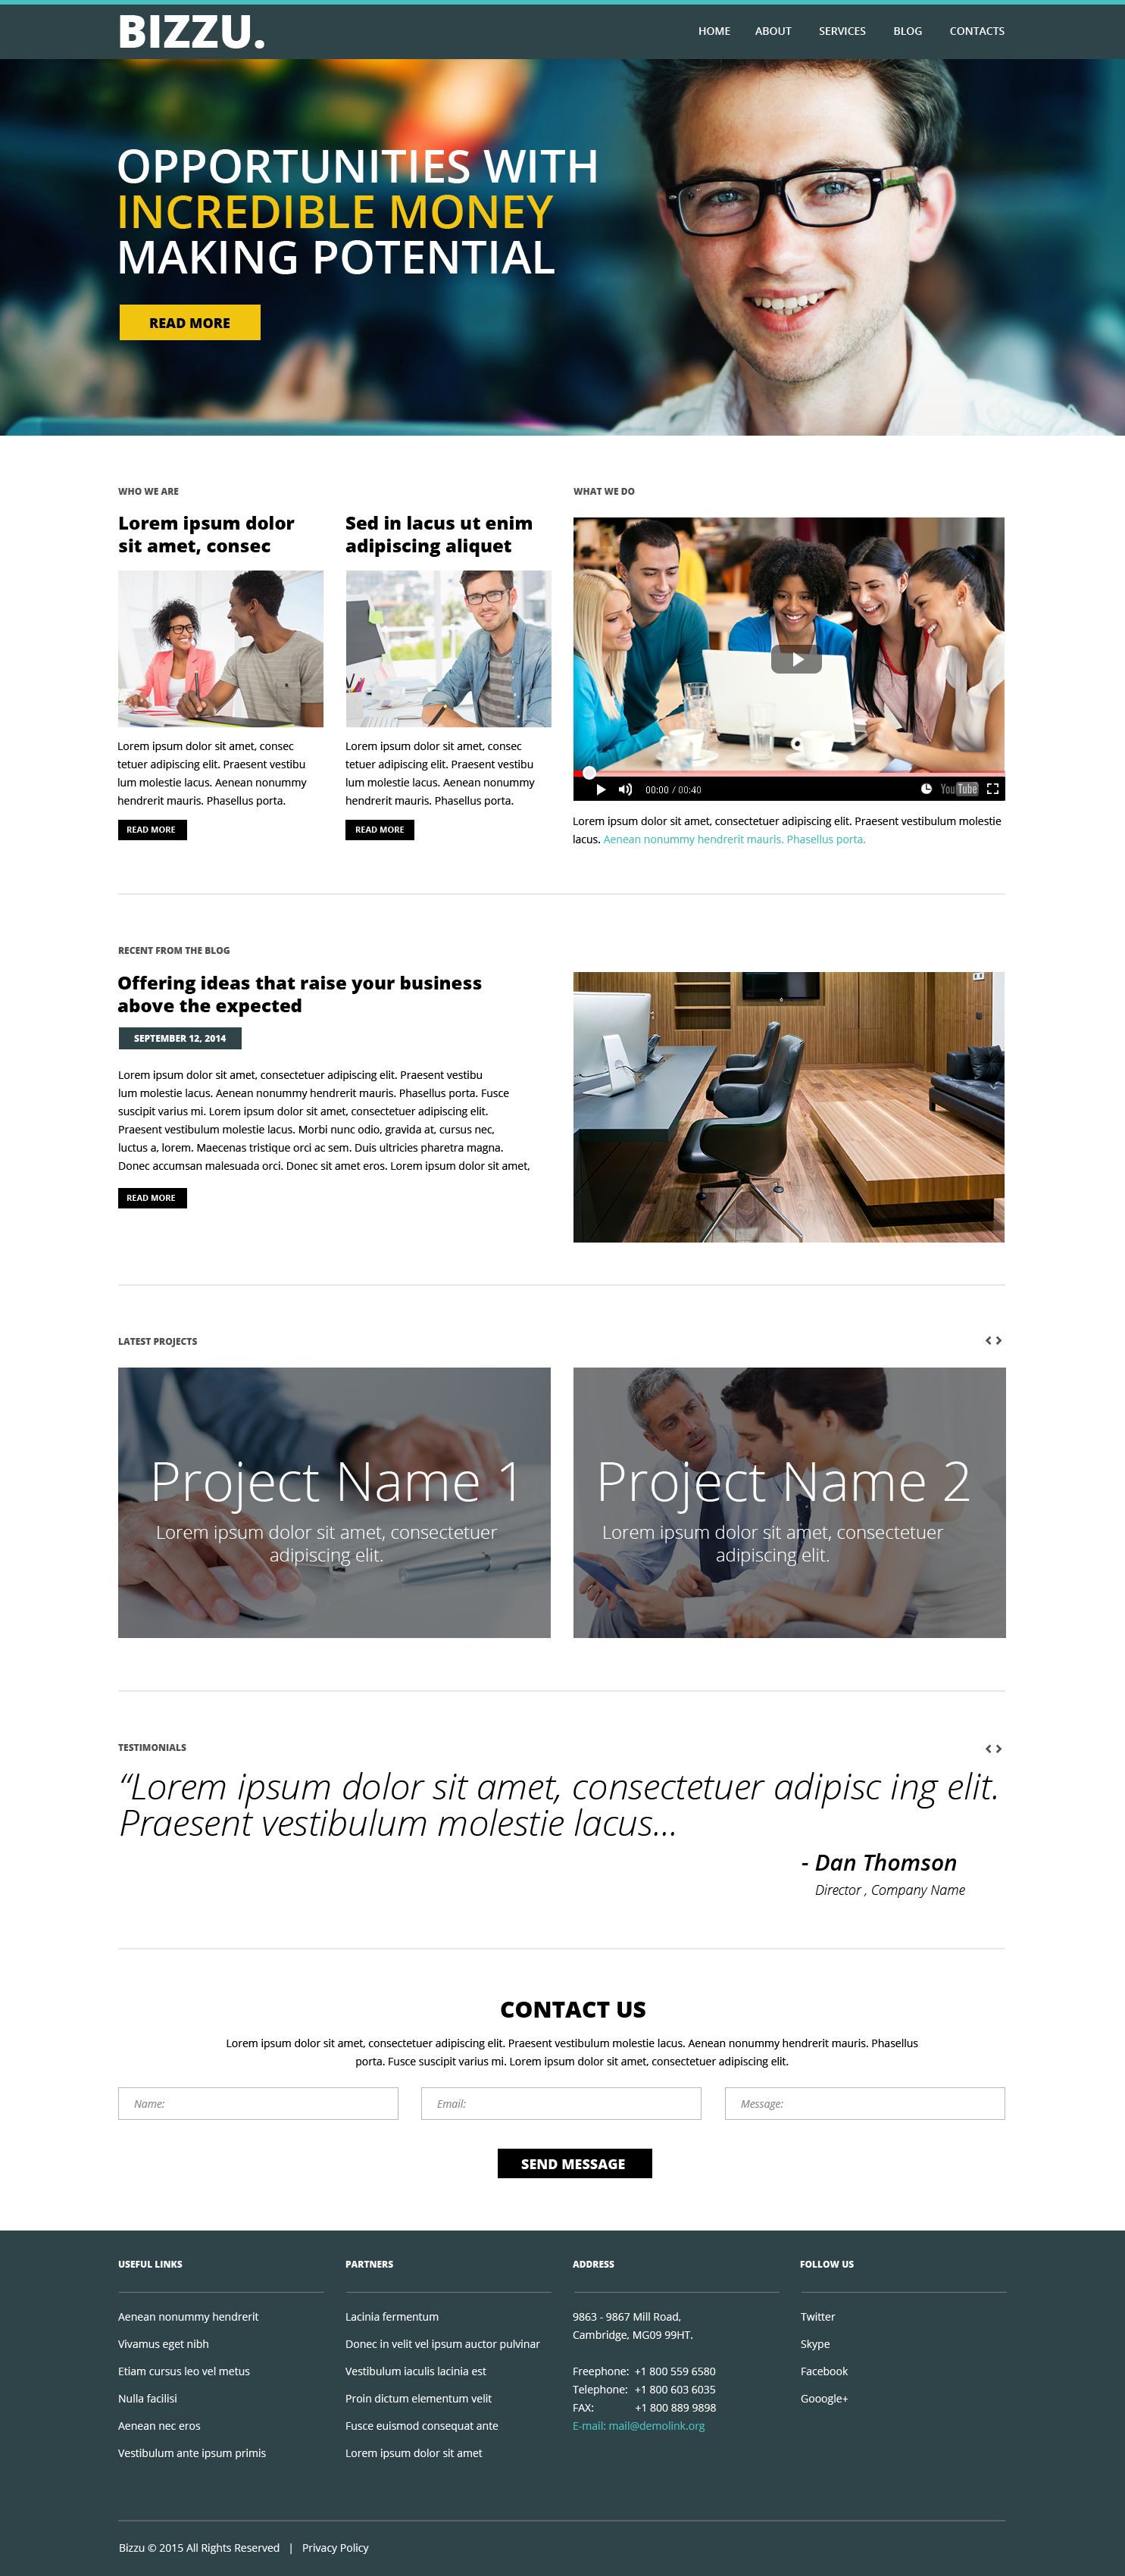 The Bizzu Business WordPress Design 53014, one of the best WordPress themes of its kind (business, most popular), also known as bizzu business WordPress template, success company WordPress template, enterprise solution WordPress template, business WordPress template, industry WordPress template, technical WordPress template, clients WordPress template, customer support WordPress template, automate WordPress template, flow WordPress template, services WordPress template, plug-in WordPress template, flex WordPress template, profile WordPress template, principles WordPress template, web products WordPress template, technology system and related with bizzu business, success company, enterprise solution, business, industry, technical, clients, customer support, automate, flow, services, plug-in, flex, profile, principles, web products, technology system, etc.